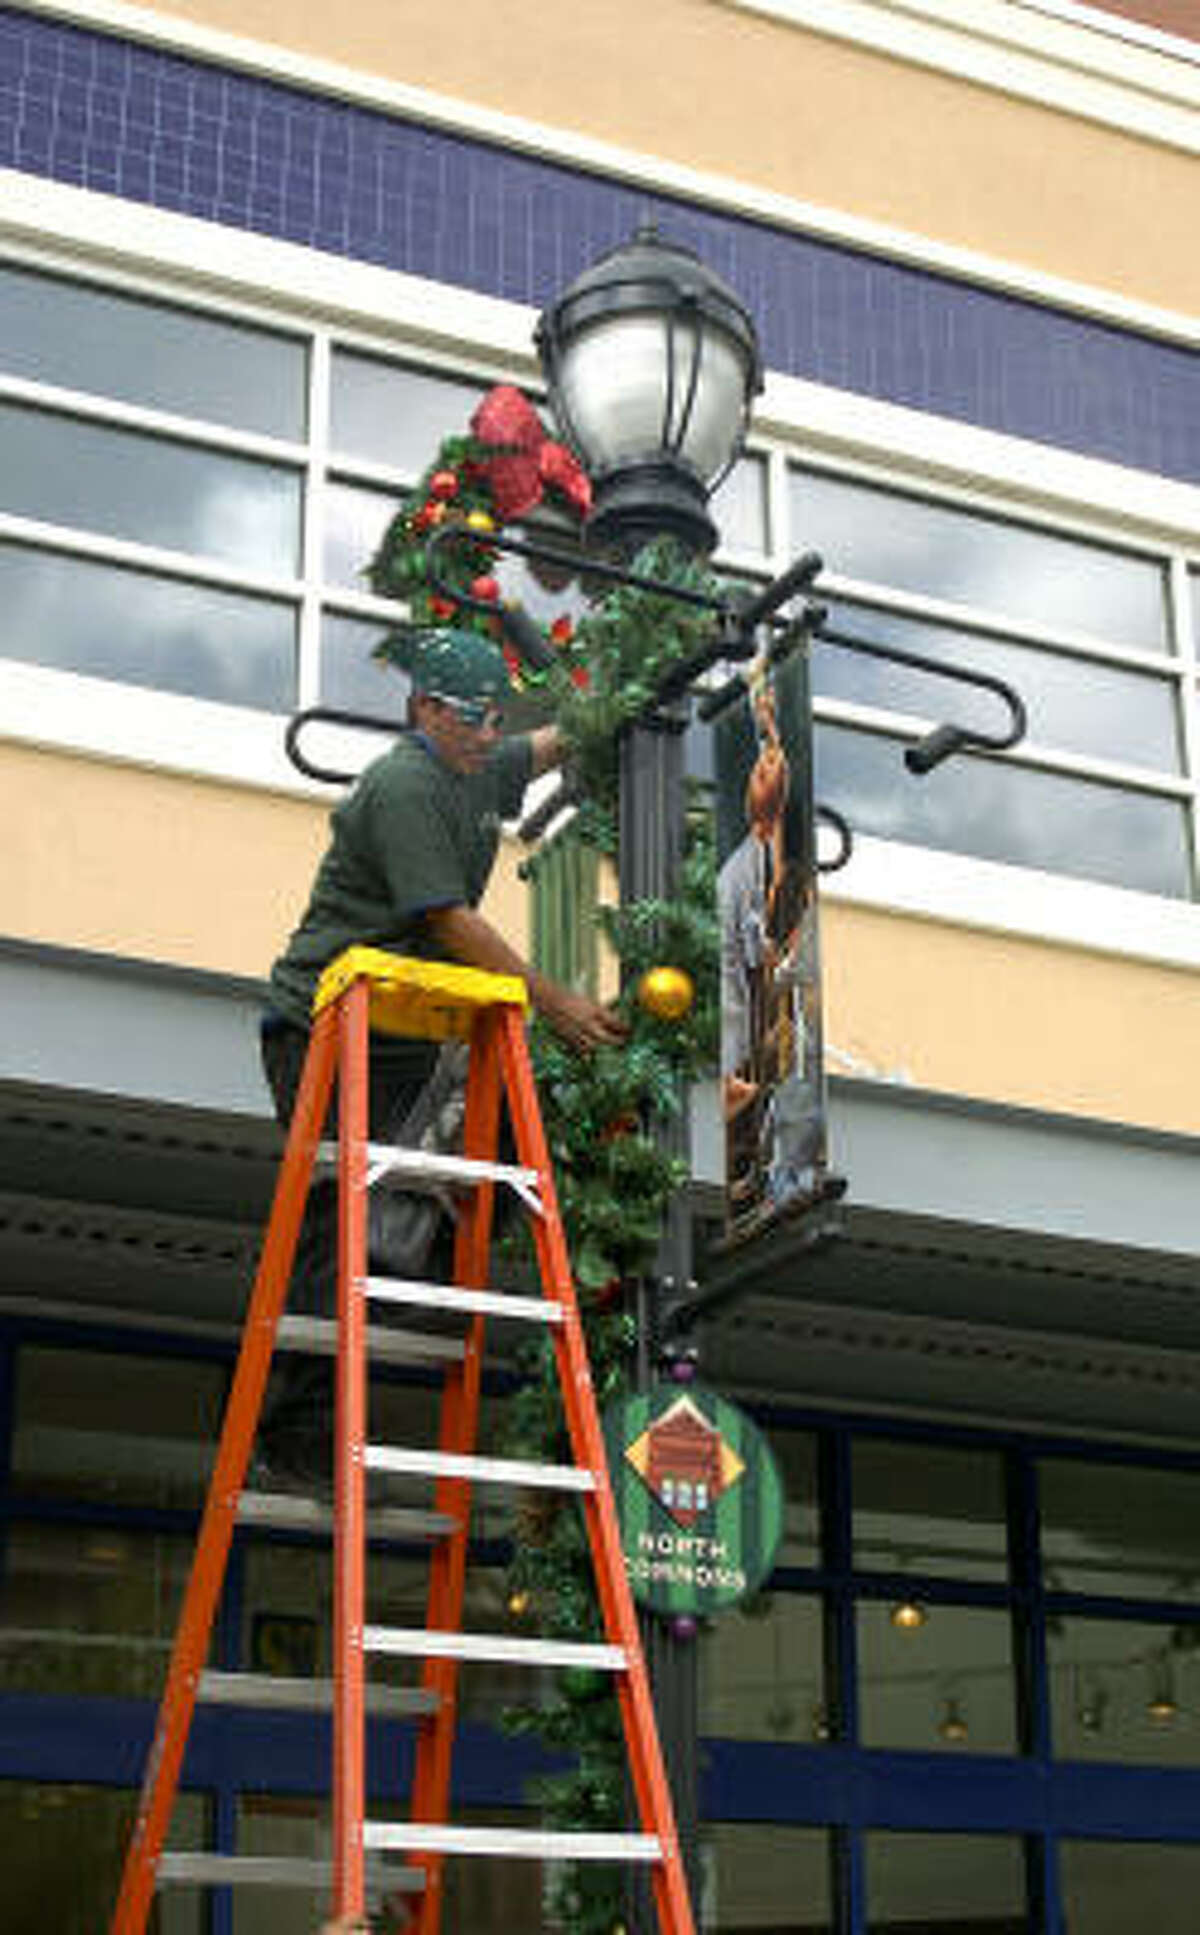 Santos Gamuz puts up holiday decorations at Market Street in The Woodlands as the retail center prepares for the holiday shopping season.